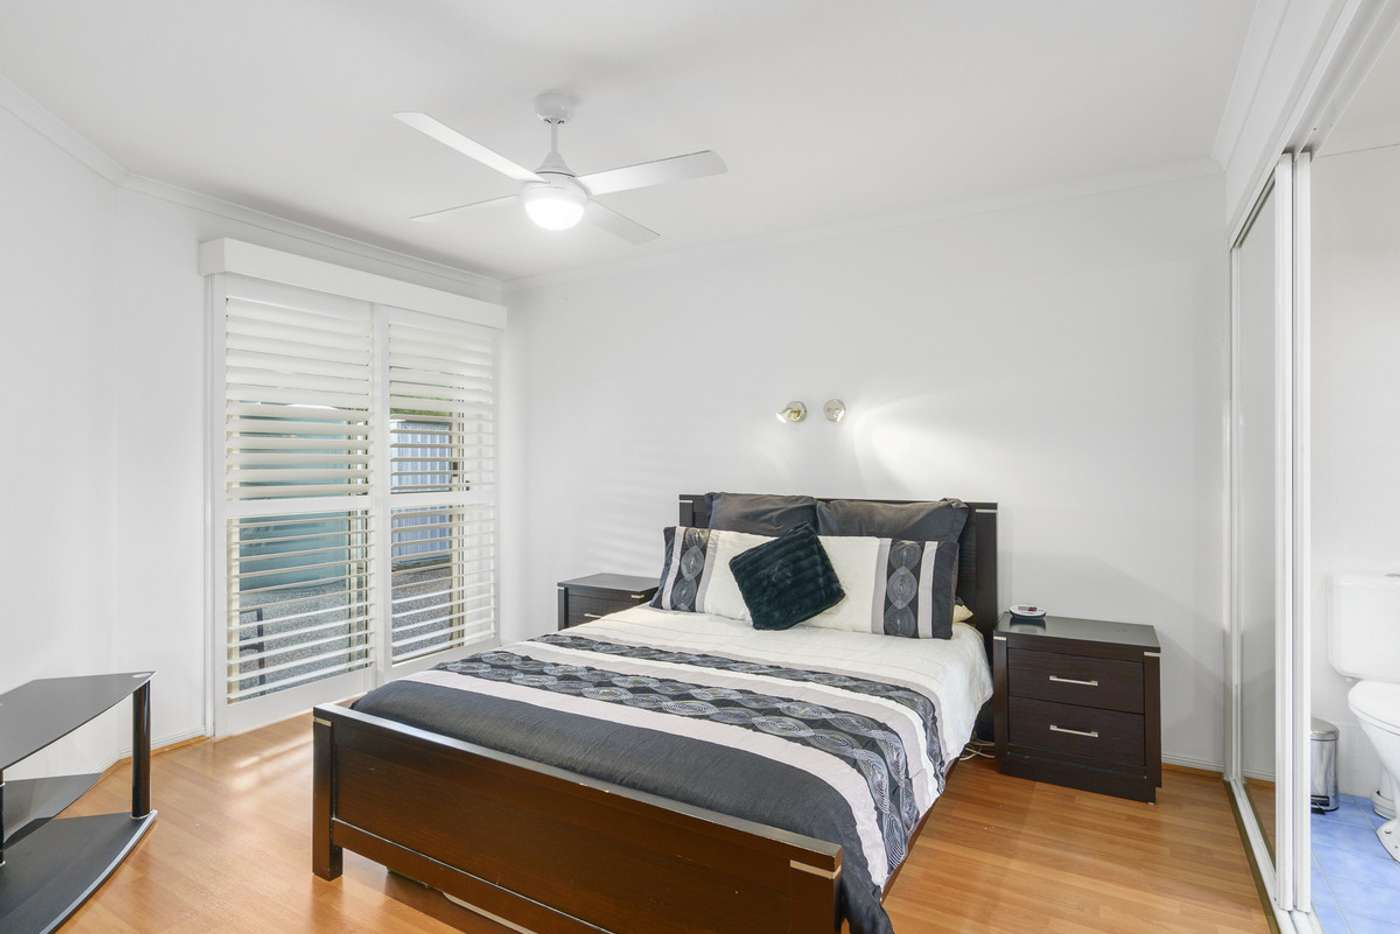 Sixth view of Homely house listing, 15 Ferricks Court, Upper Coomera QLD 4209